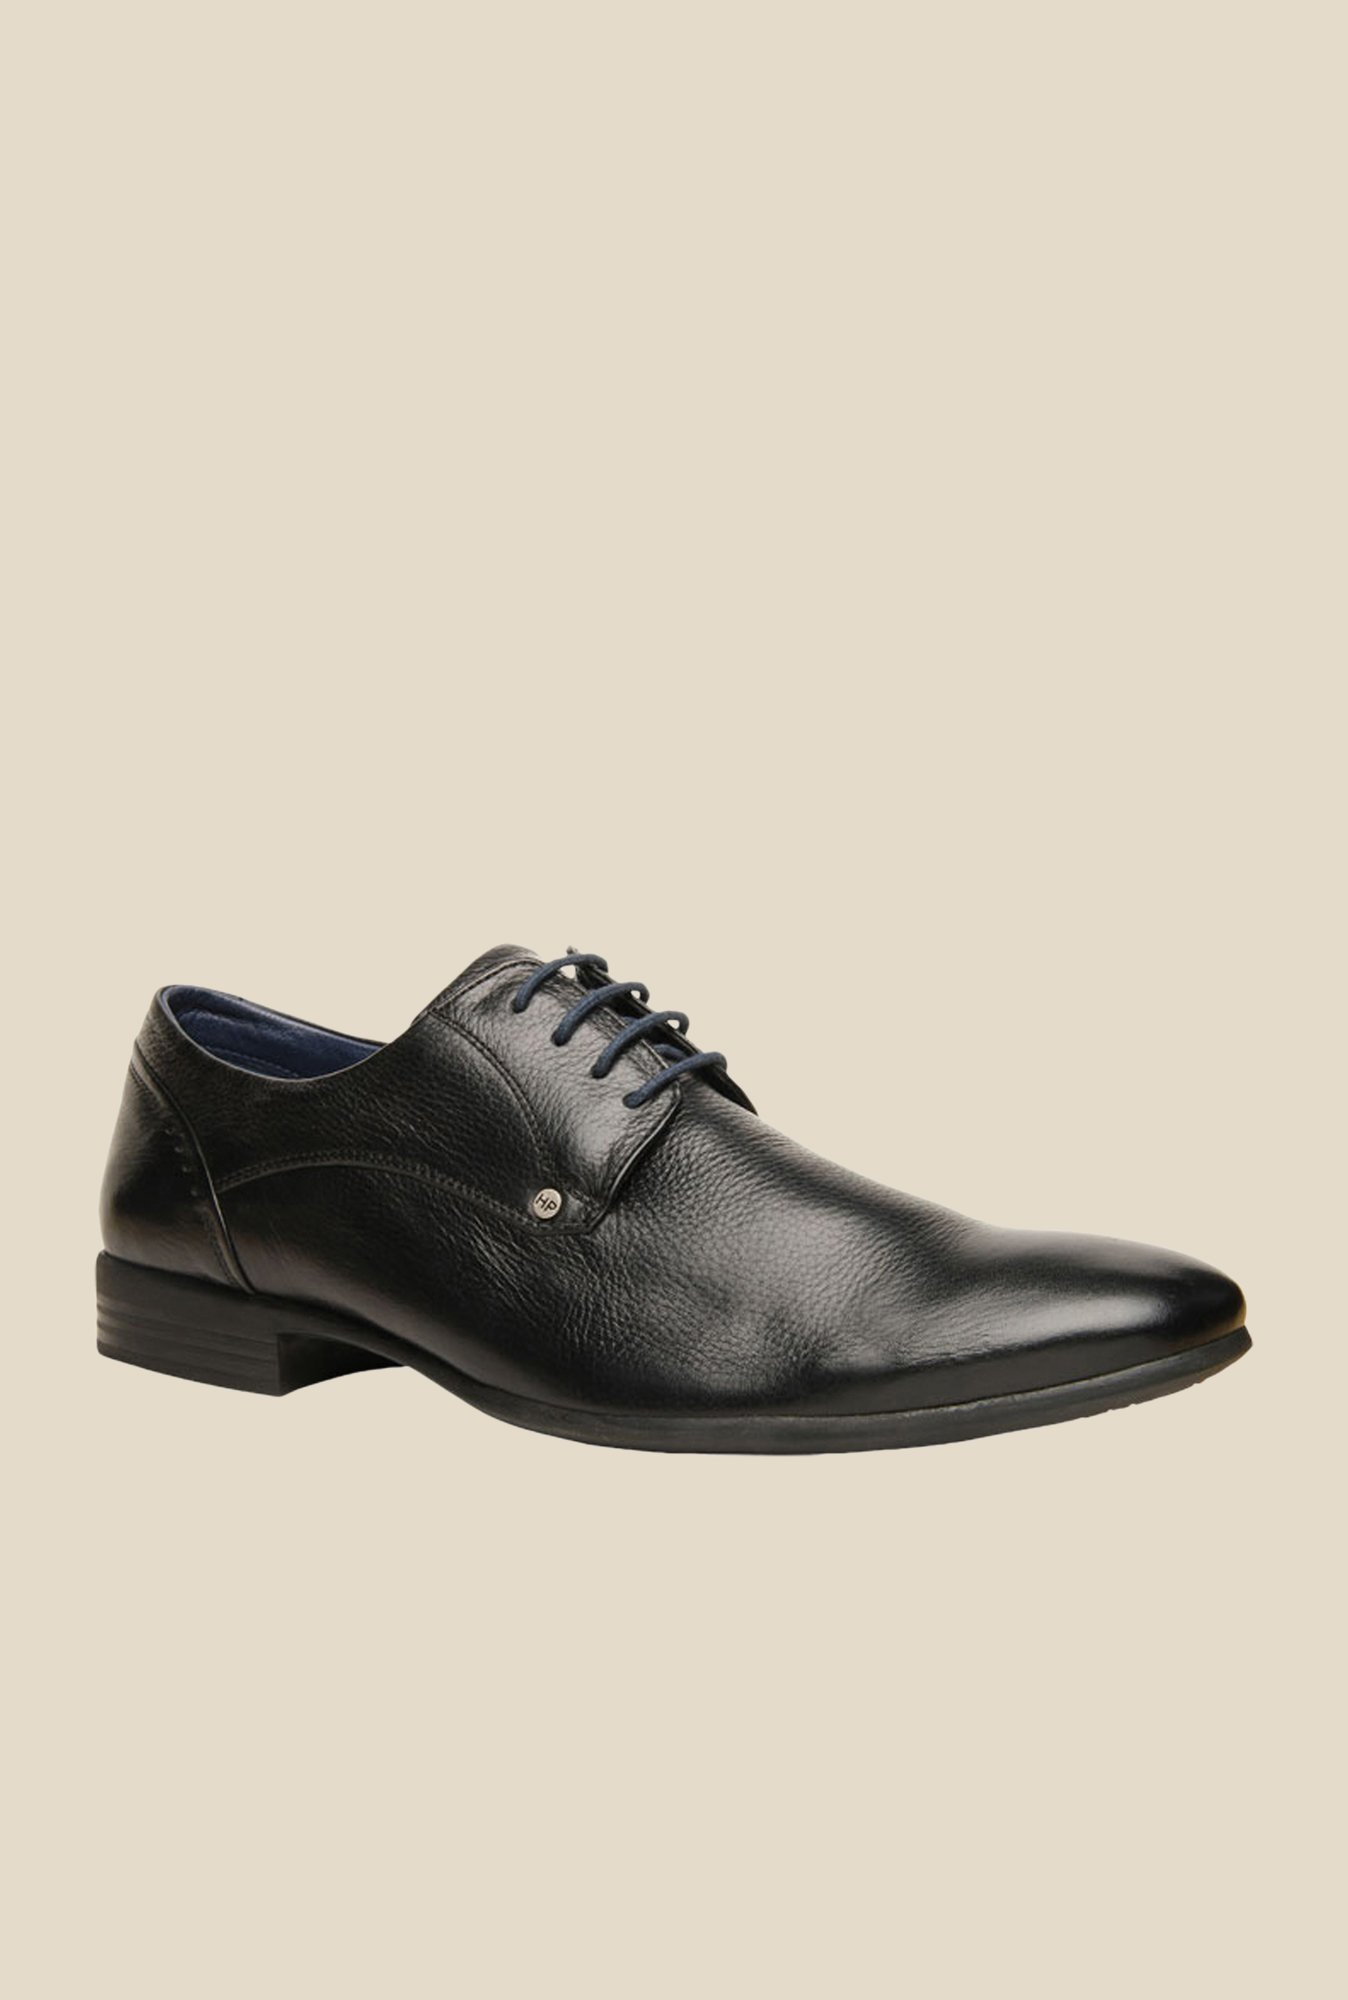 Hush Puppies Gamma Black Derby Shoes